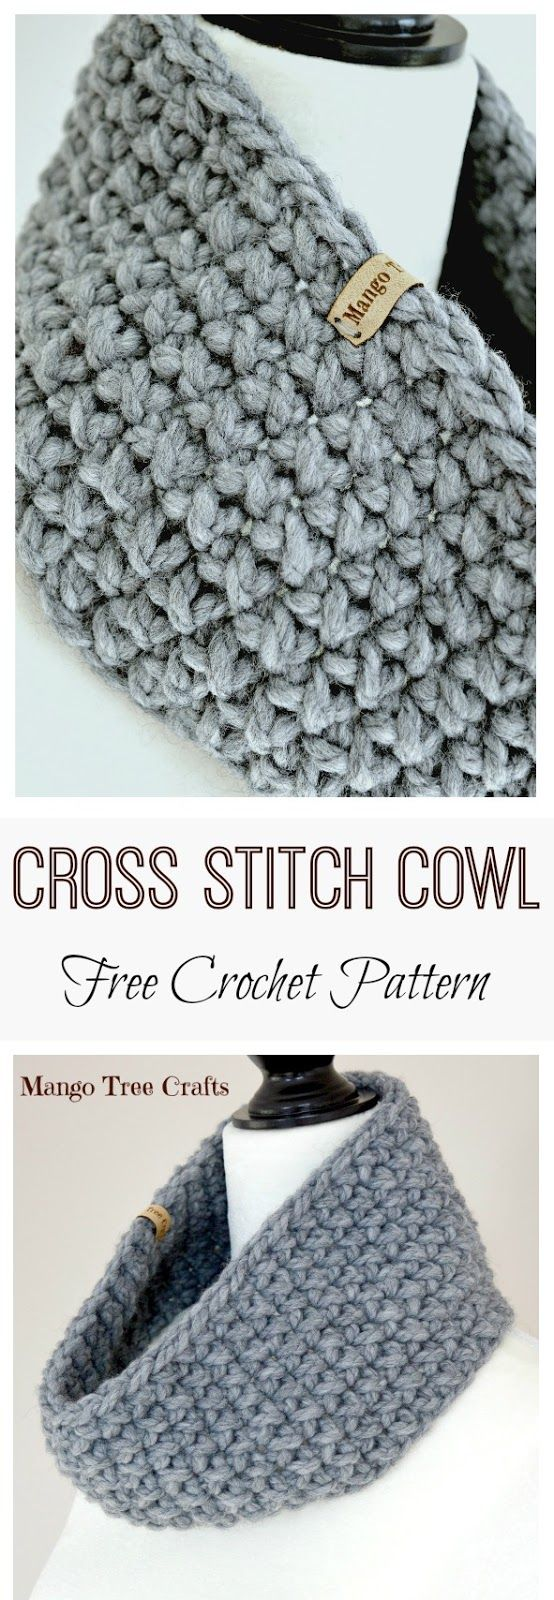 LESS THAN 1 HOUR CROCHETCOWL FREE CROCHETPATTERN (Bees and ...